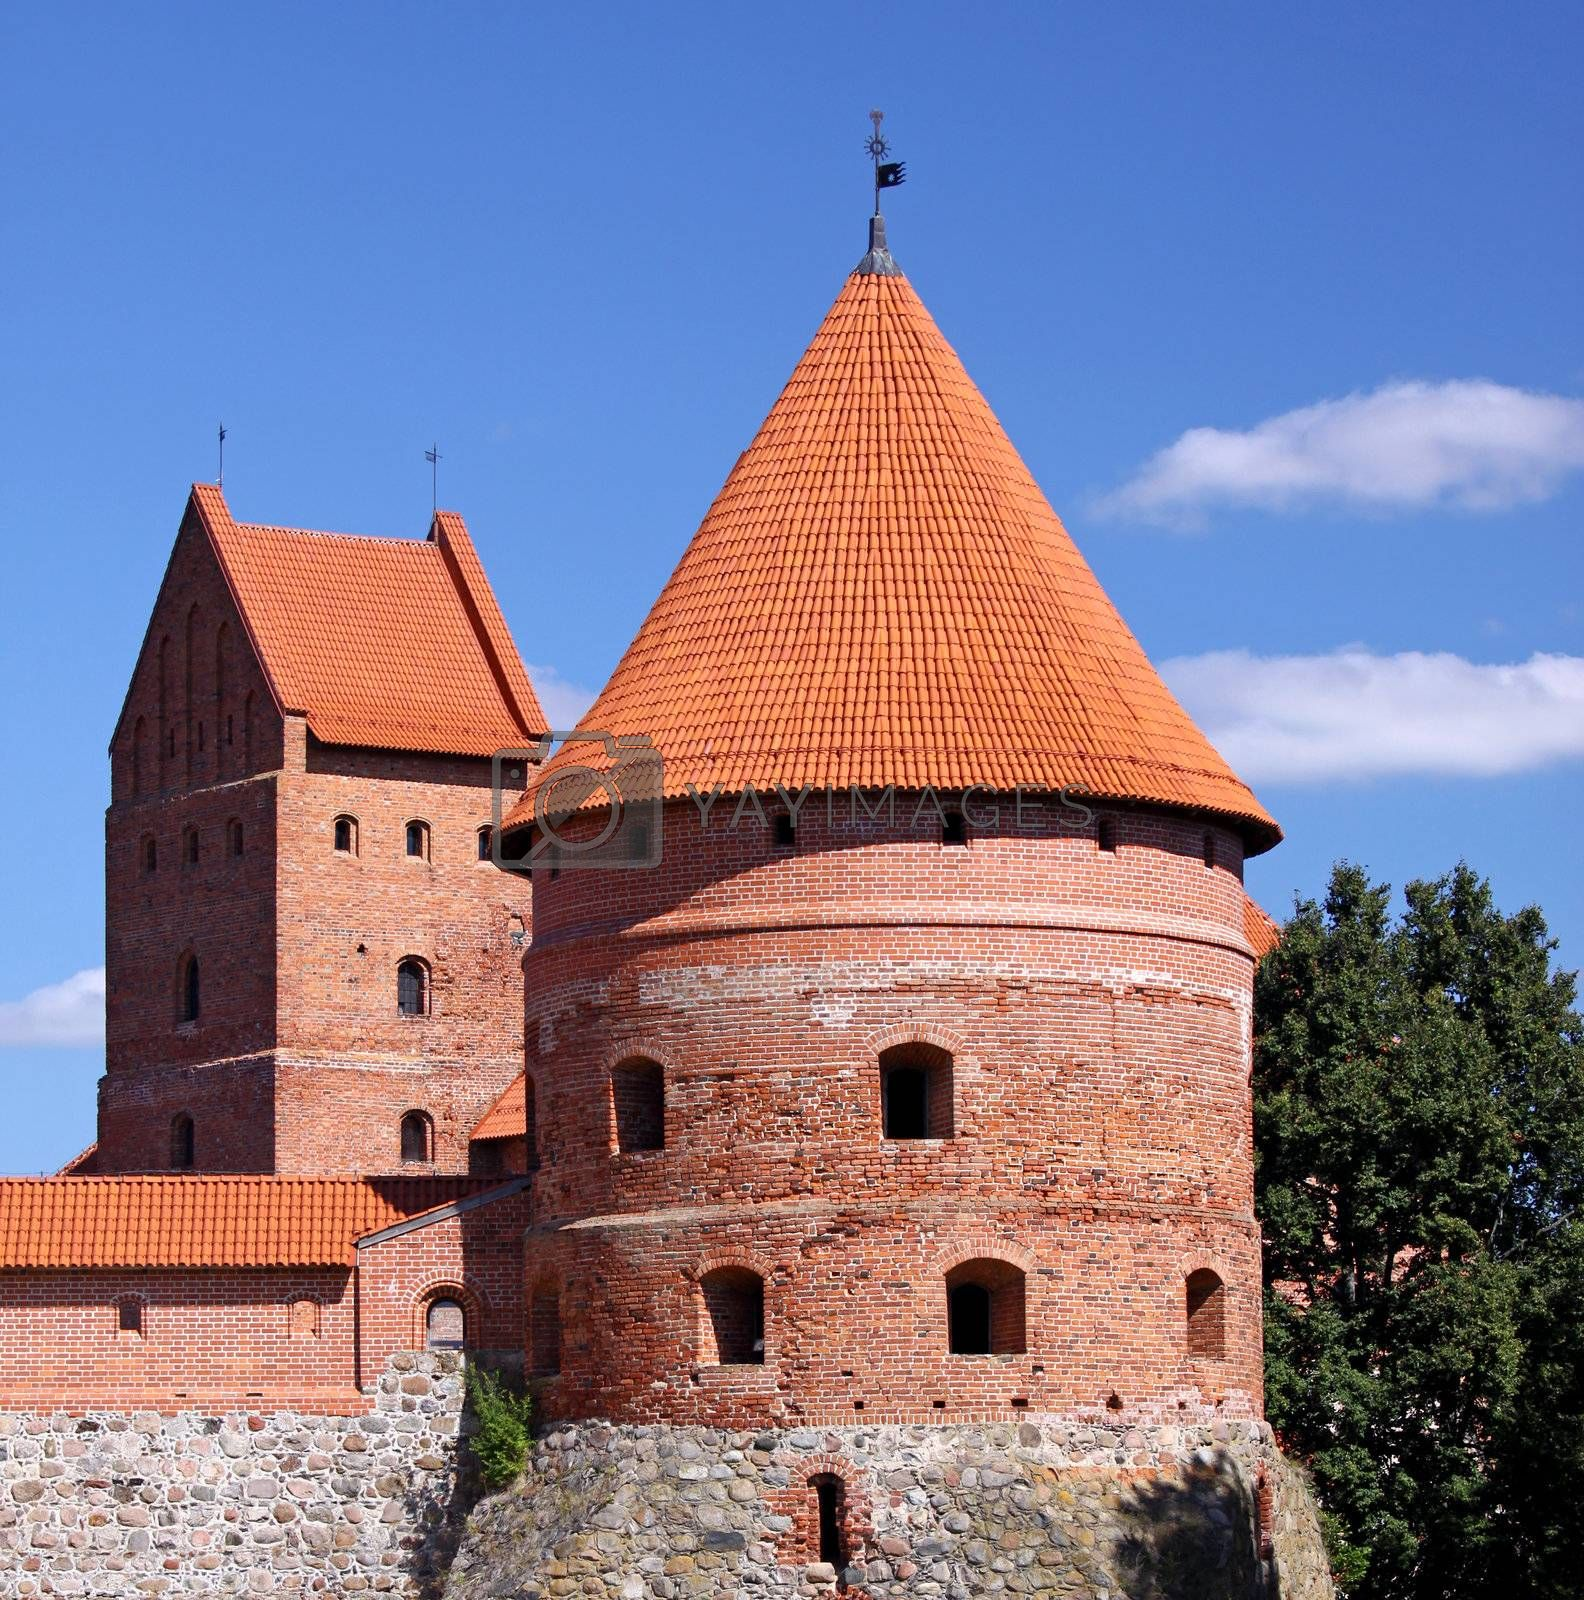 A picture of the medieval Trakai castle in Lithuania